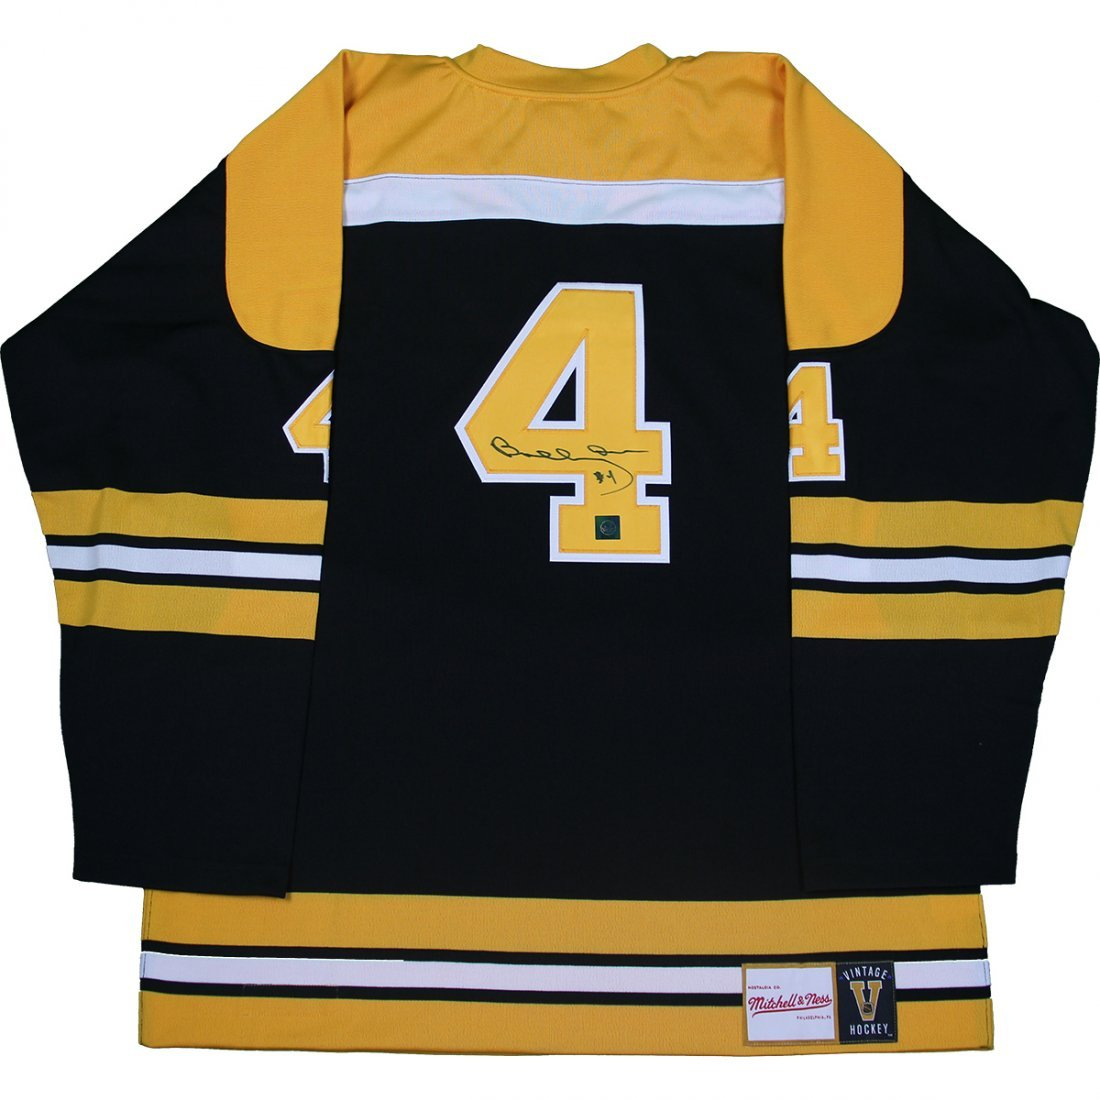 Bobby Orr Boston Bruins Signed Mitchell & Ness Jersey: